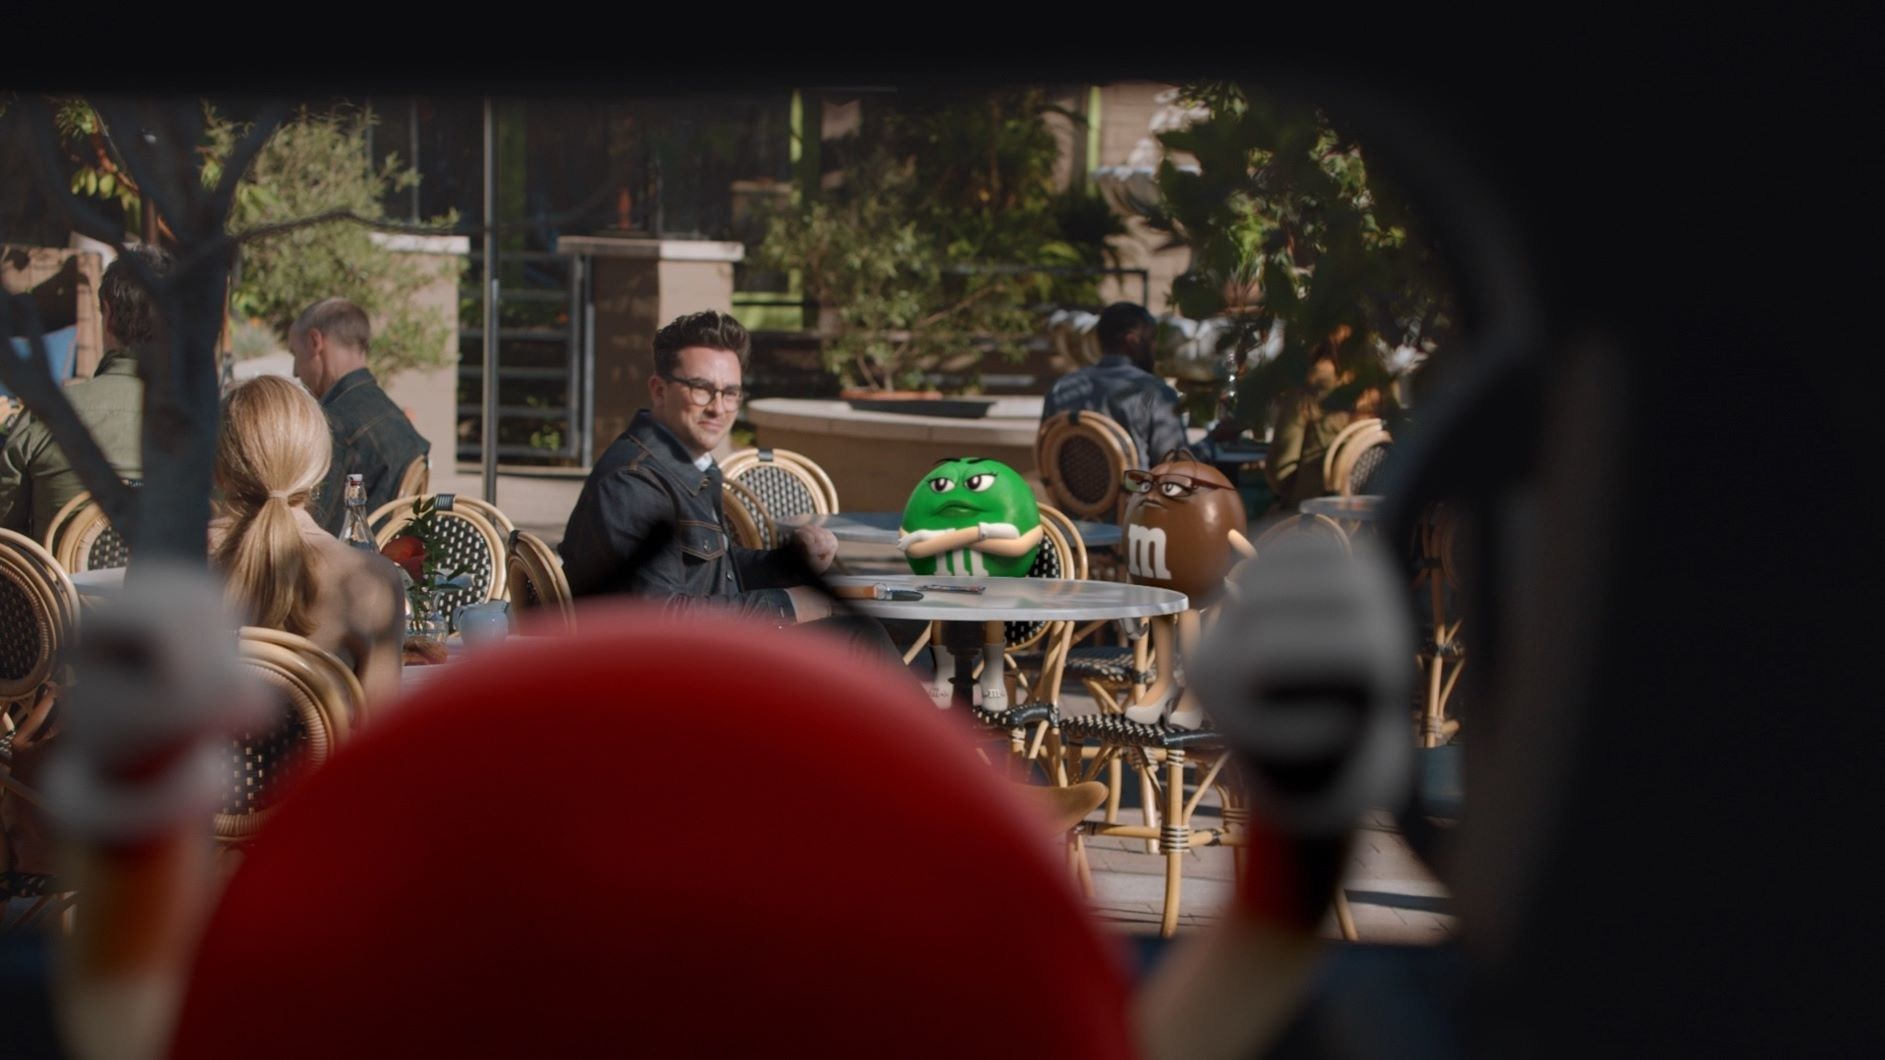 Seen+Noted: M&M's makes people come together in new Super Bowl ad with Dan Levy via BBDO NY